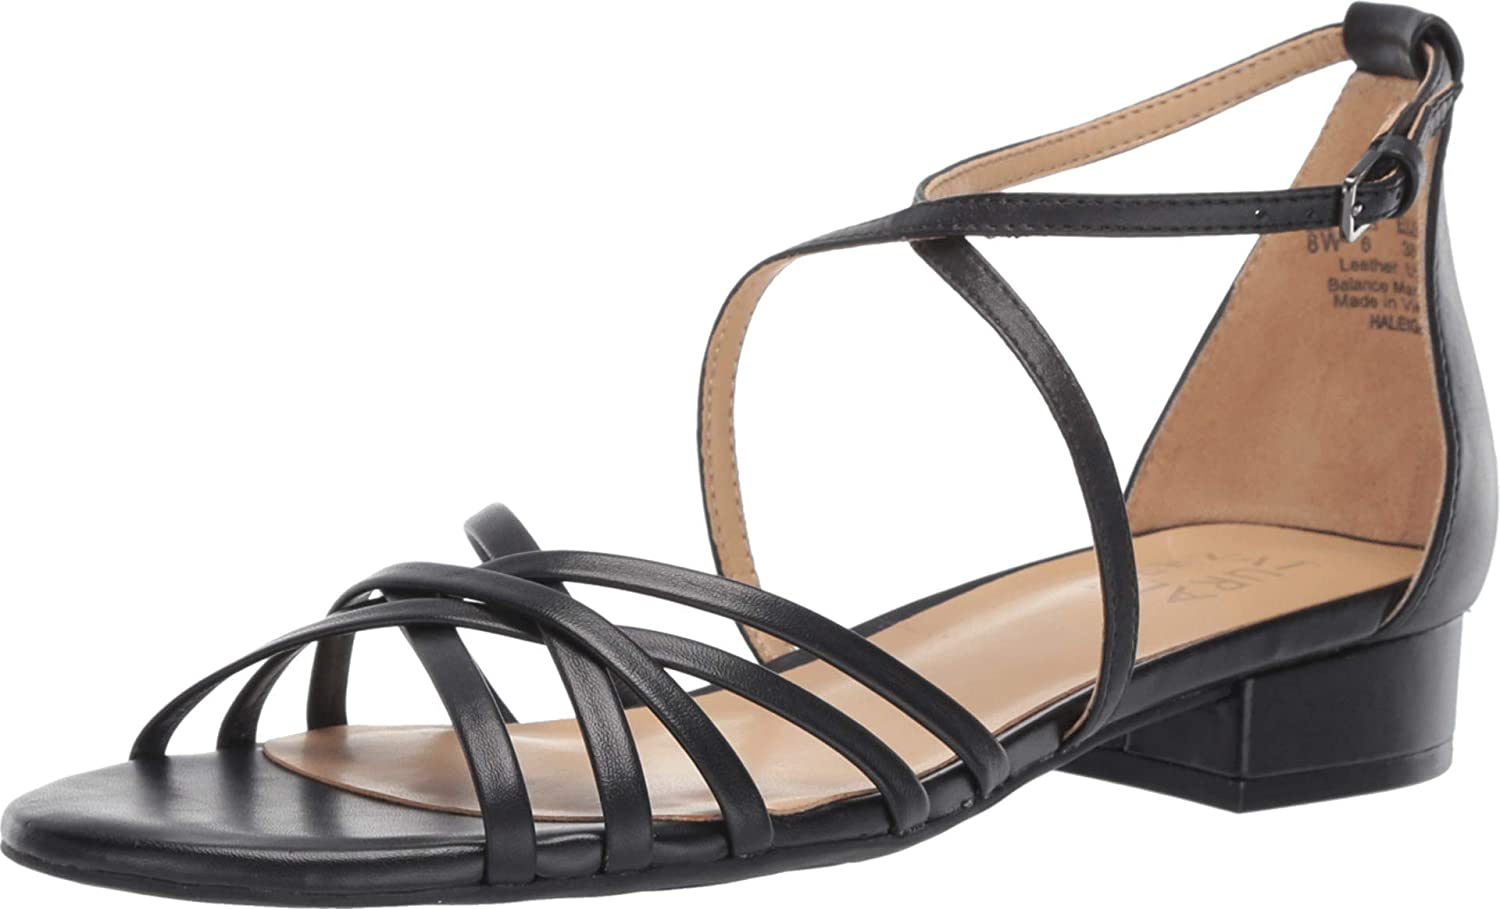 In stock Naturalizer Women's Max 51% OFF Haleigh